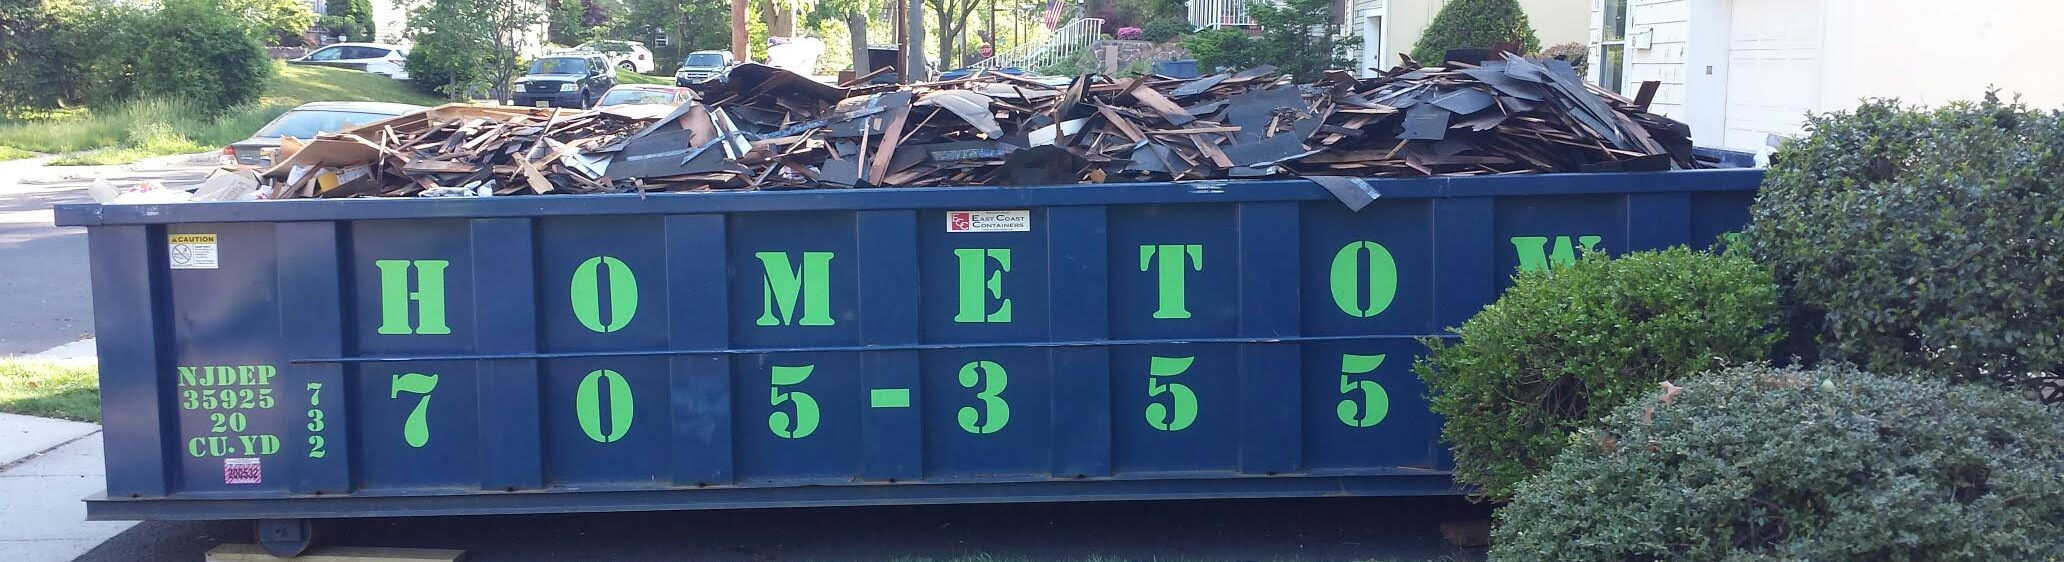 overfilled dumpster with roofing